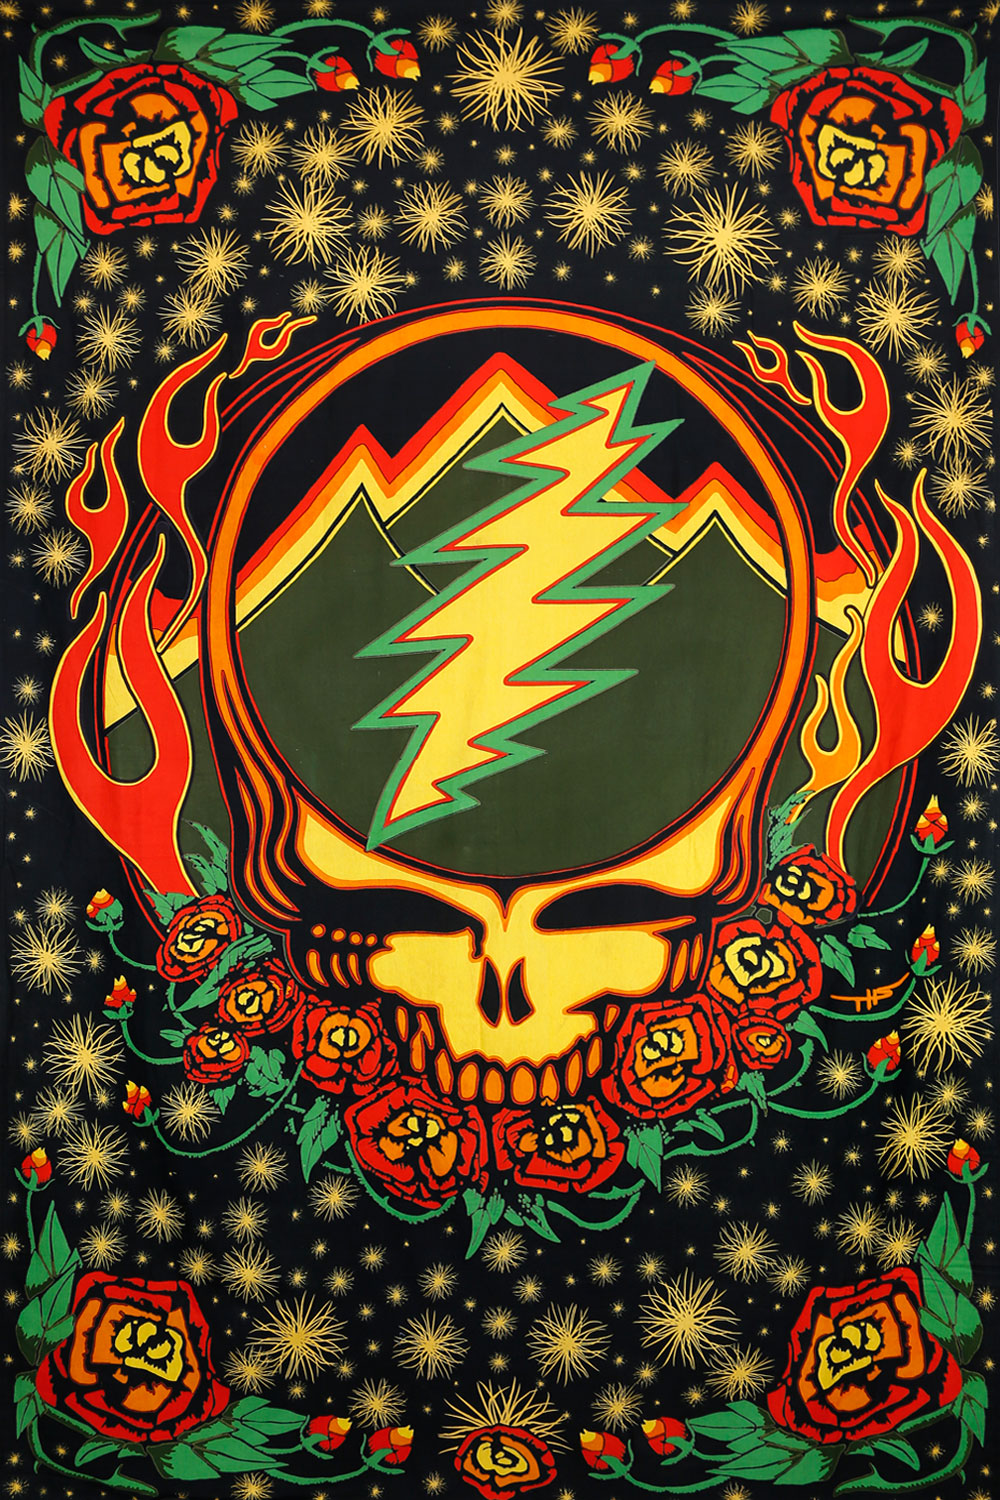 GRATEFUL DEAD SYF SCARLET FIRE TAPESTRY